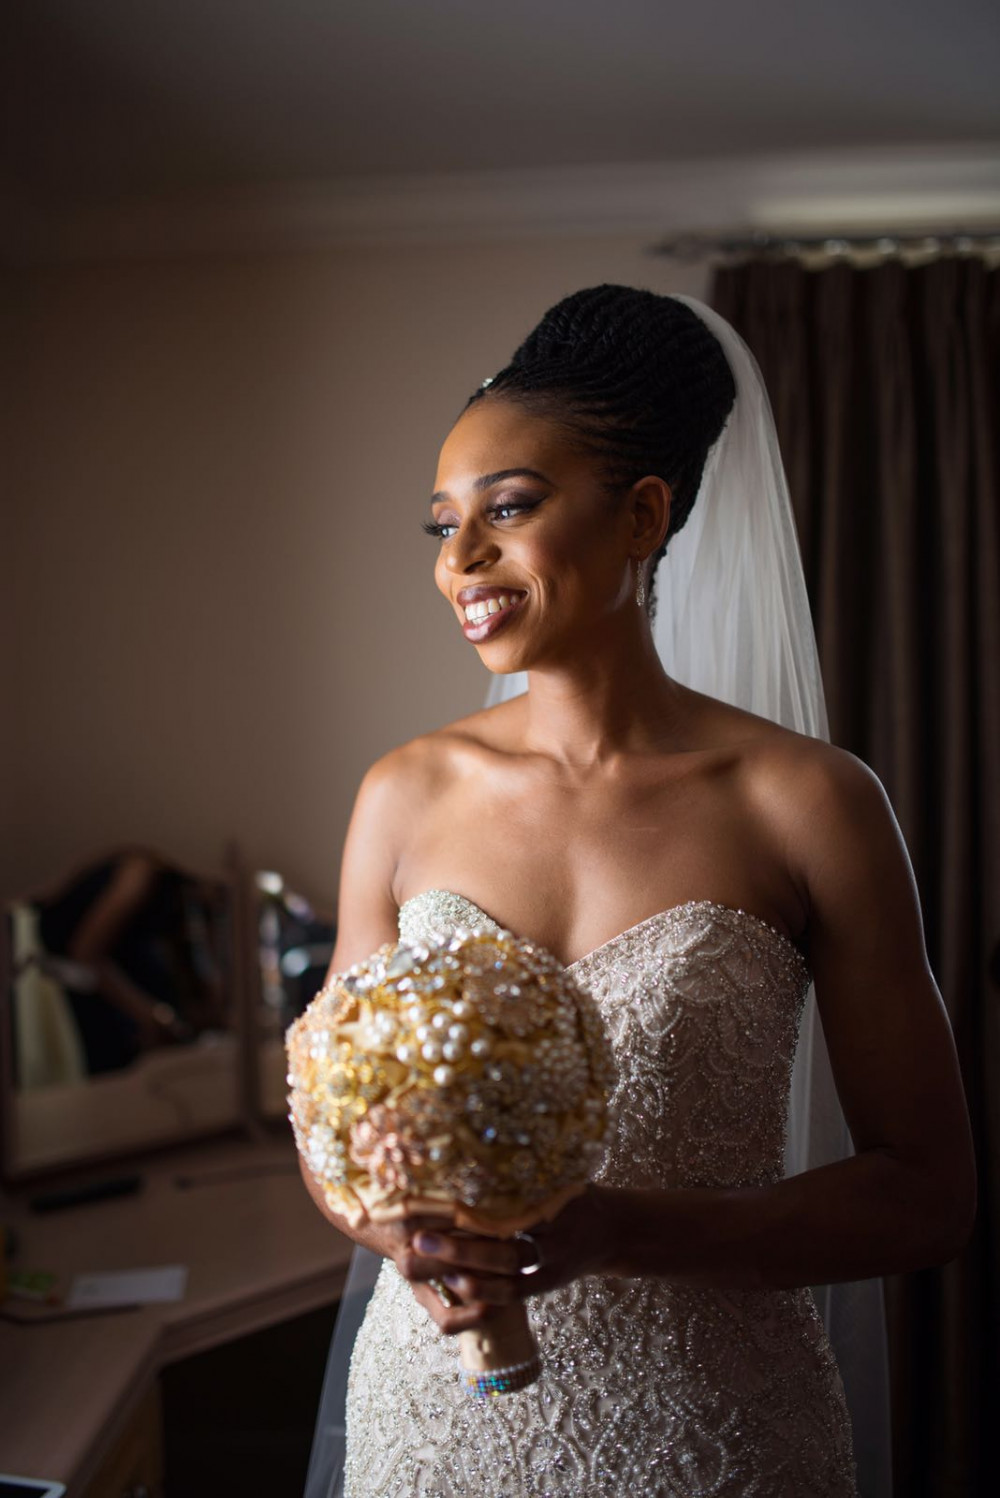 - Make Me Bridal Artist: Makeup by MeVO. Photography by: AffinityQ . #classic #glamorous #bridalmakeup #updo #glowingskin #blackbride #timelessbeauty